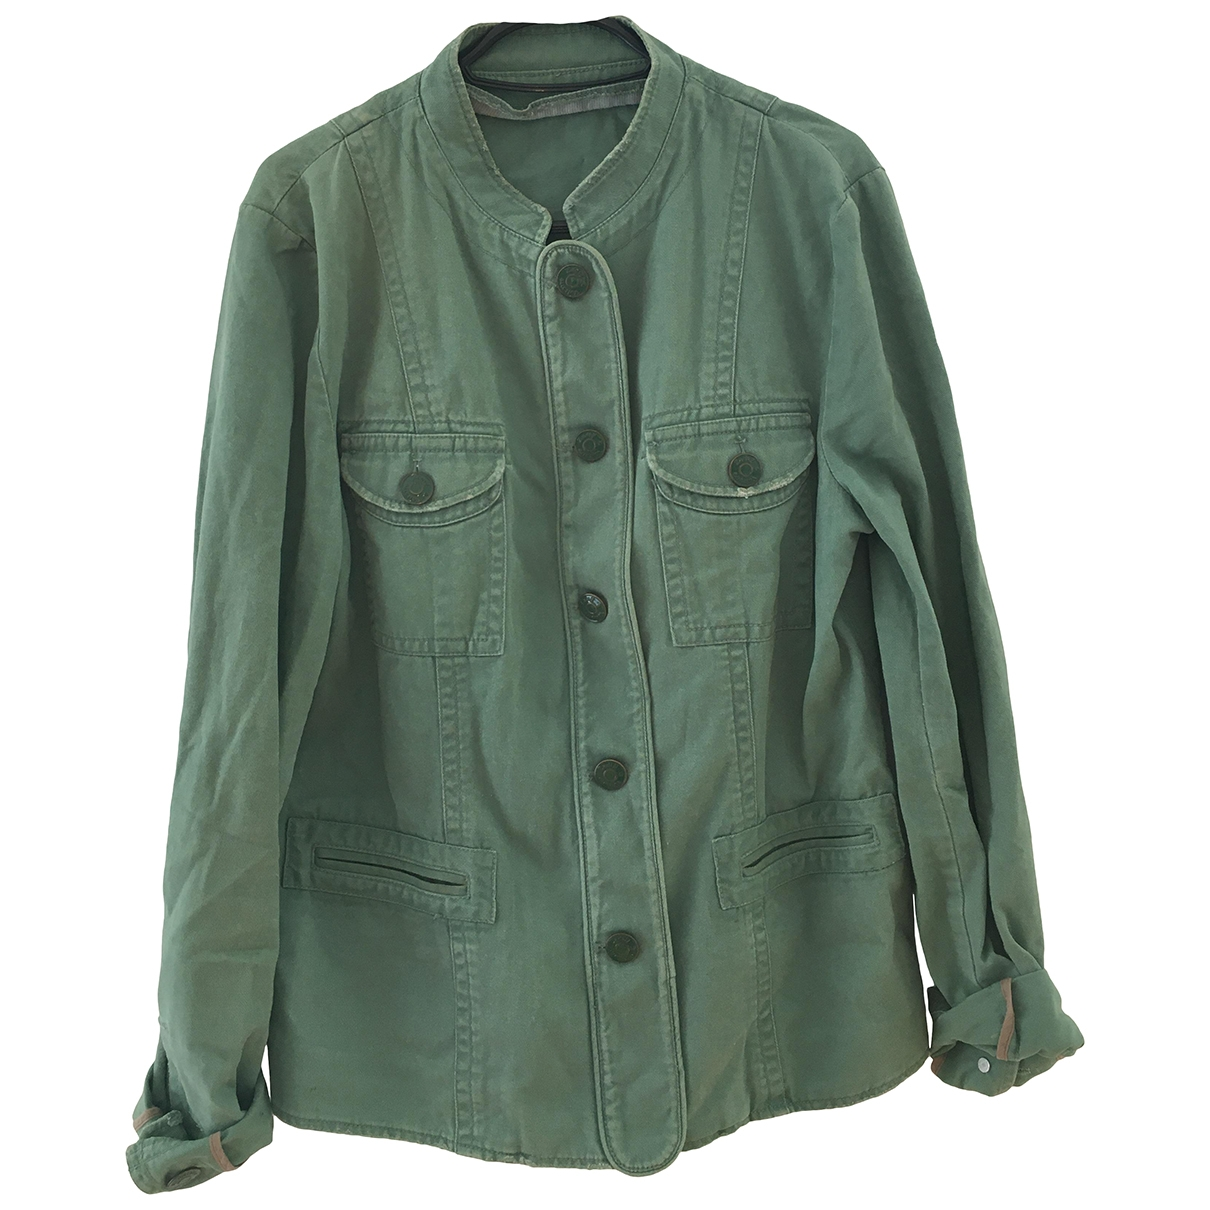 Zadig & Voltaire \N Green Cotton jacket for Women 38 FR